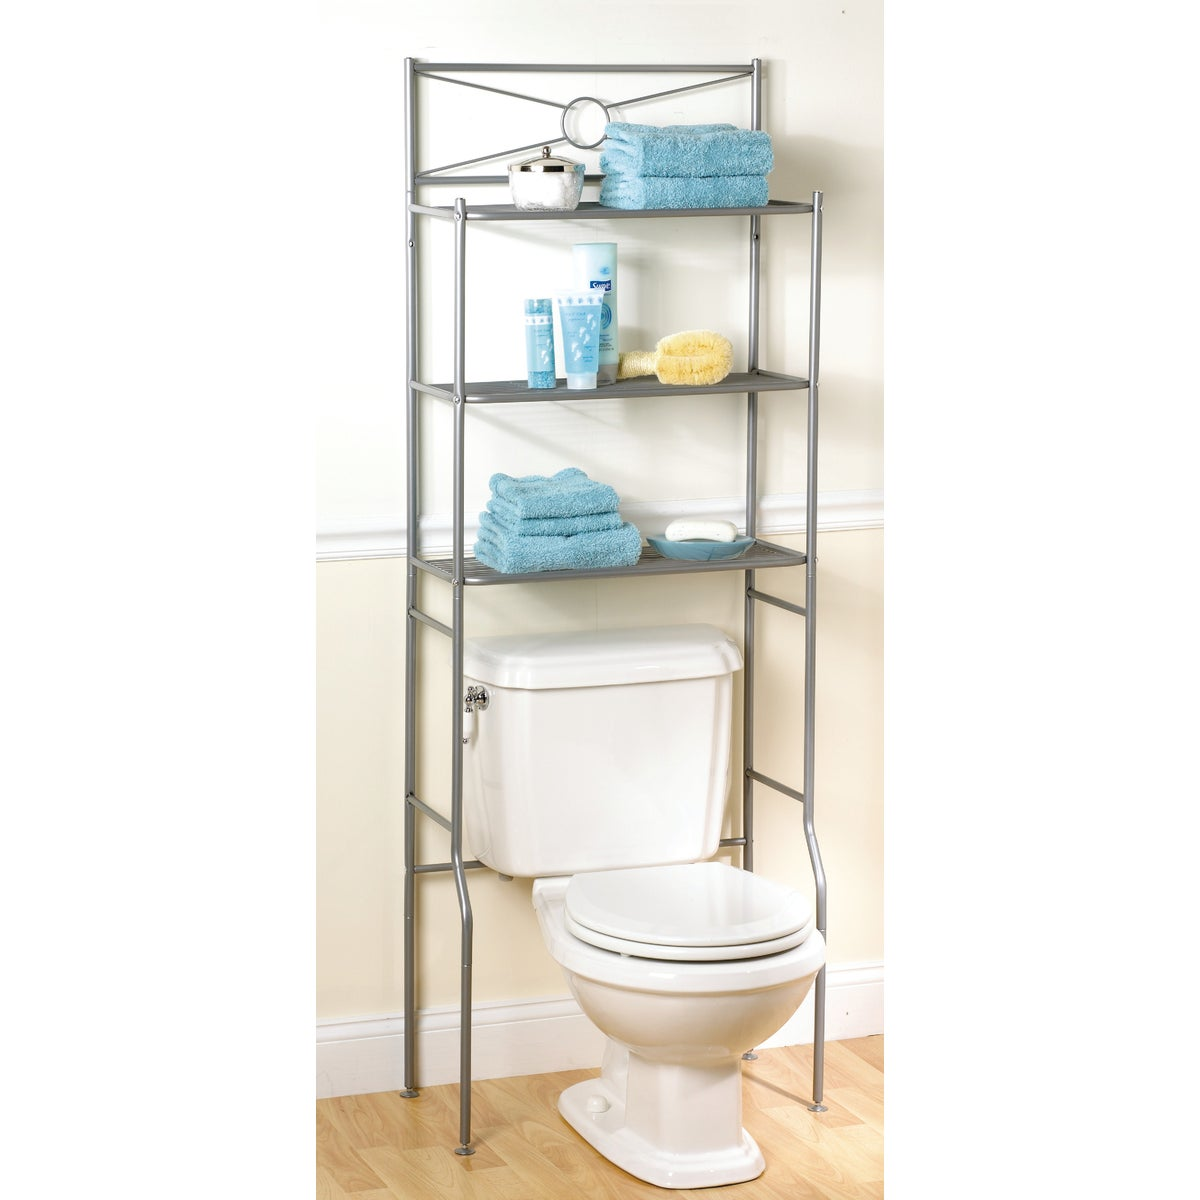 Zenith Prod. Spacesaver Bathroom Cabinet at Sears.com